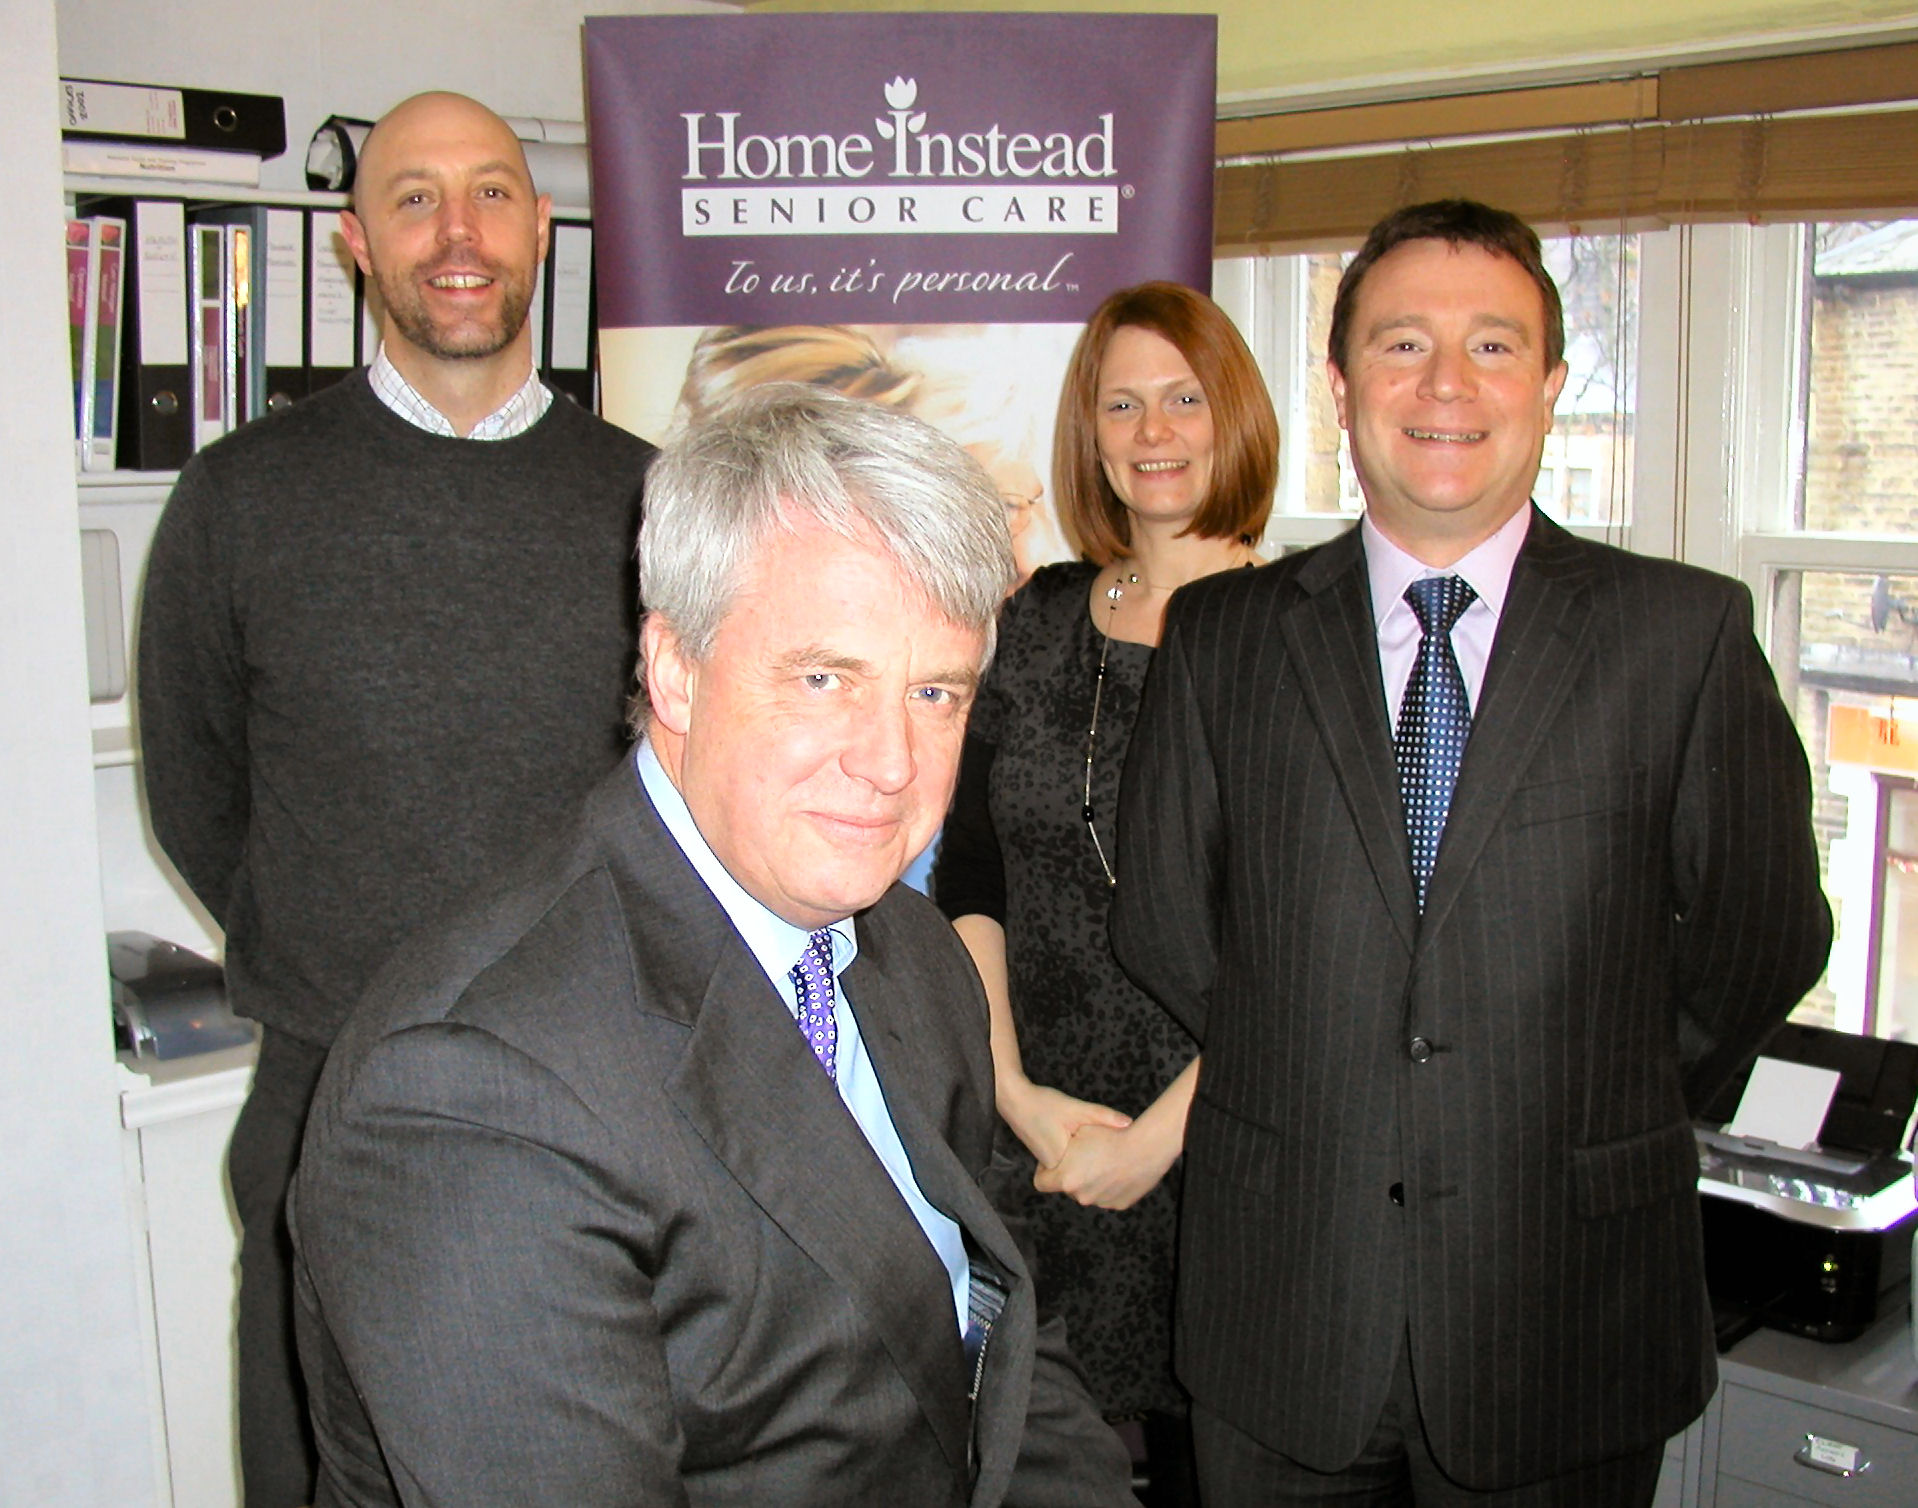 Secretary of State for Health Andrew Lansley, Home Instead CEO Trevor Brocklebank and Oldham and Saddleworth owner Mick Sheehan